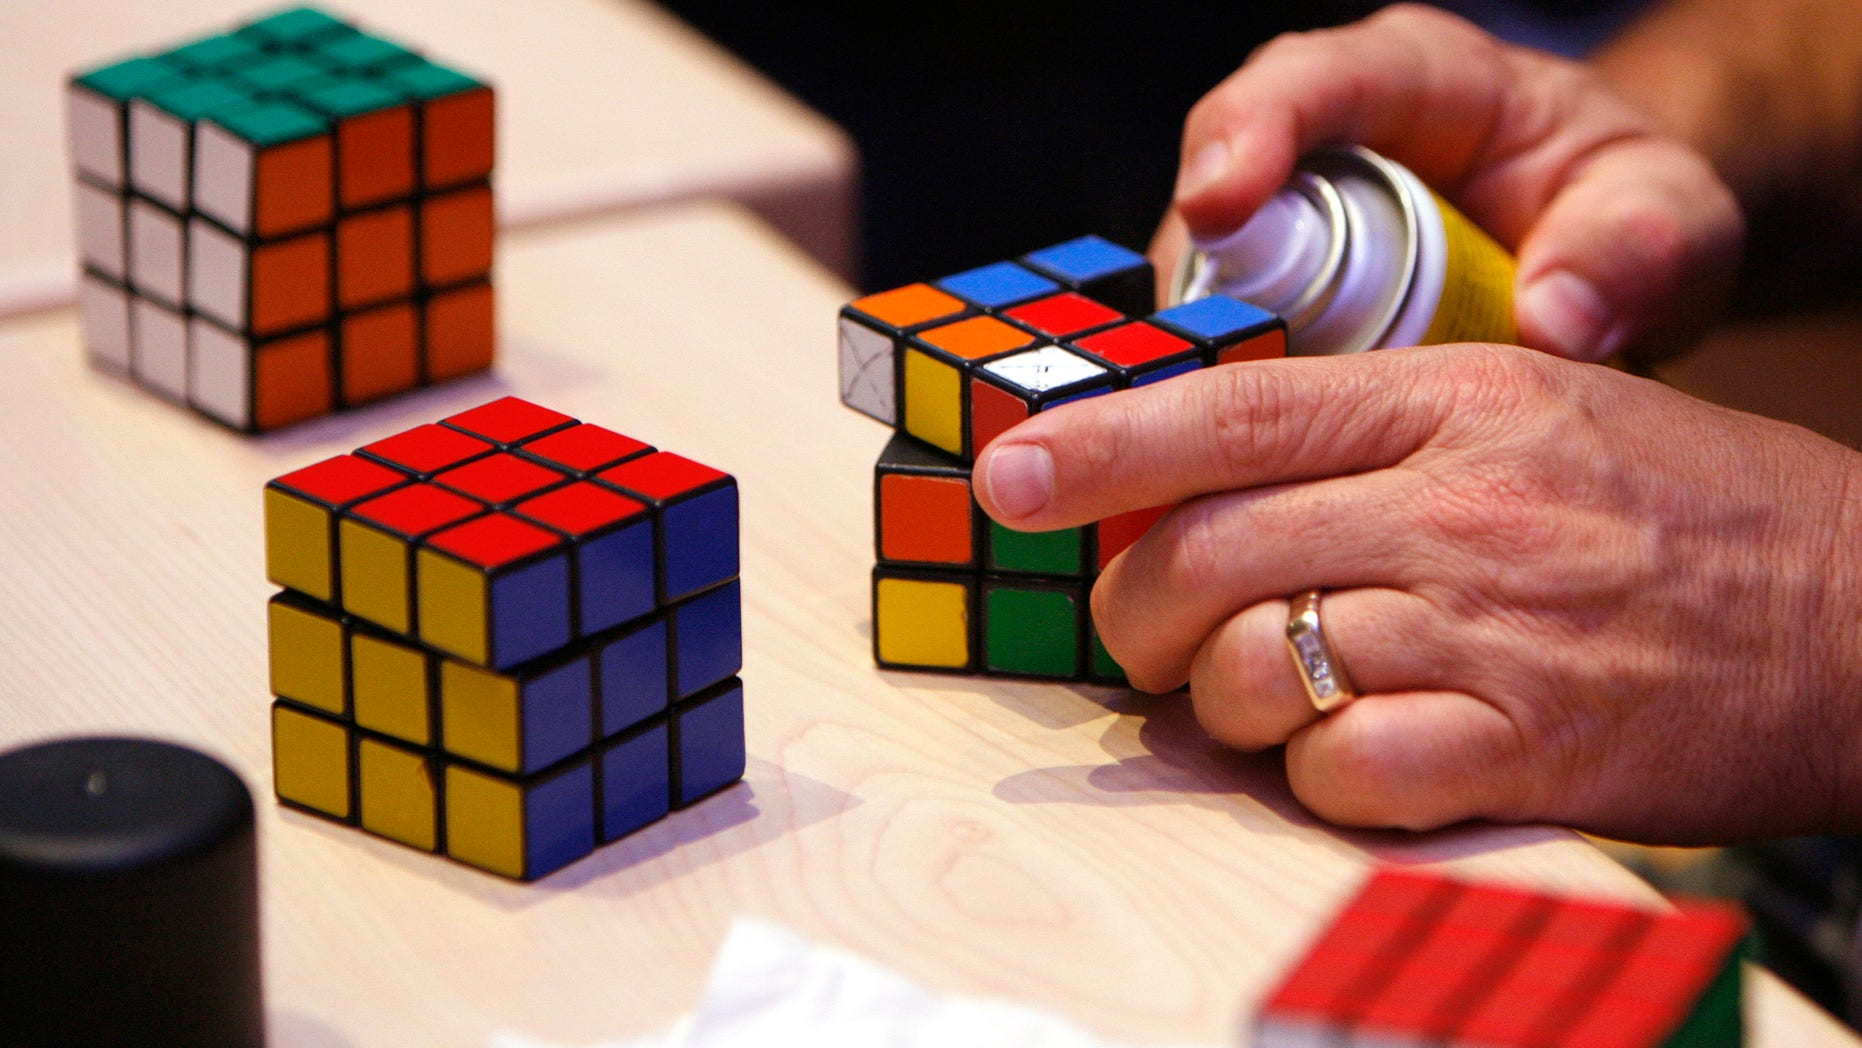 A competitor cleaning his Rubik's cube.